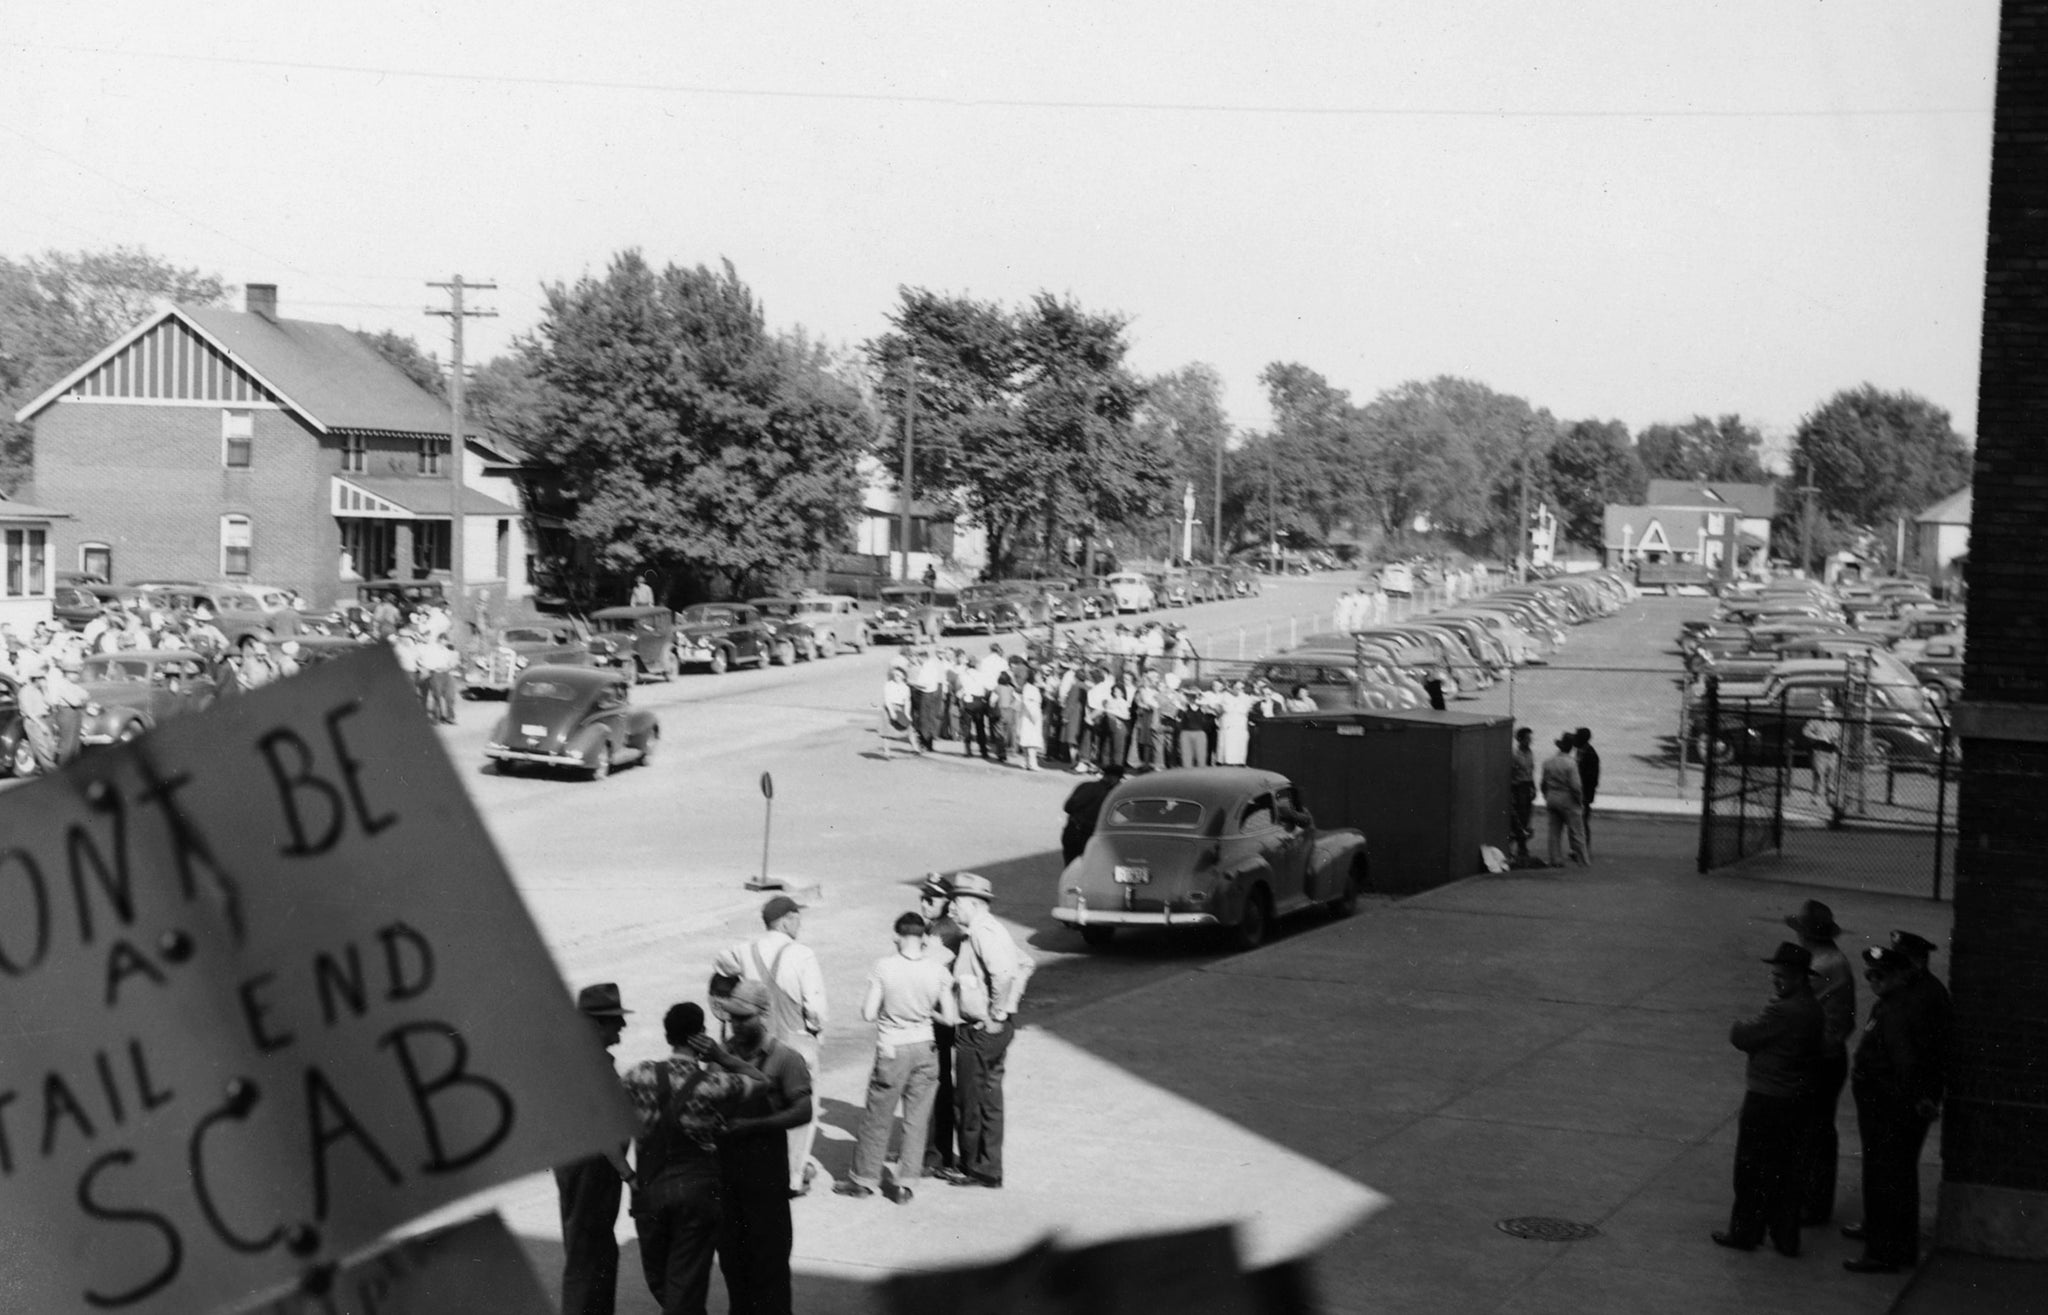 Picketers on Sycamore Street during a Rath Packing Company strike in 1948. -- Leo R. Larson